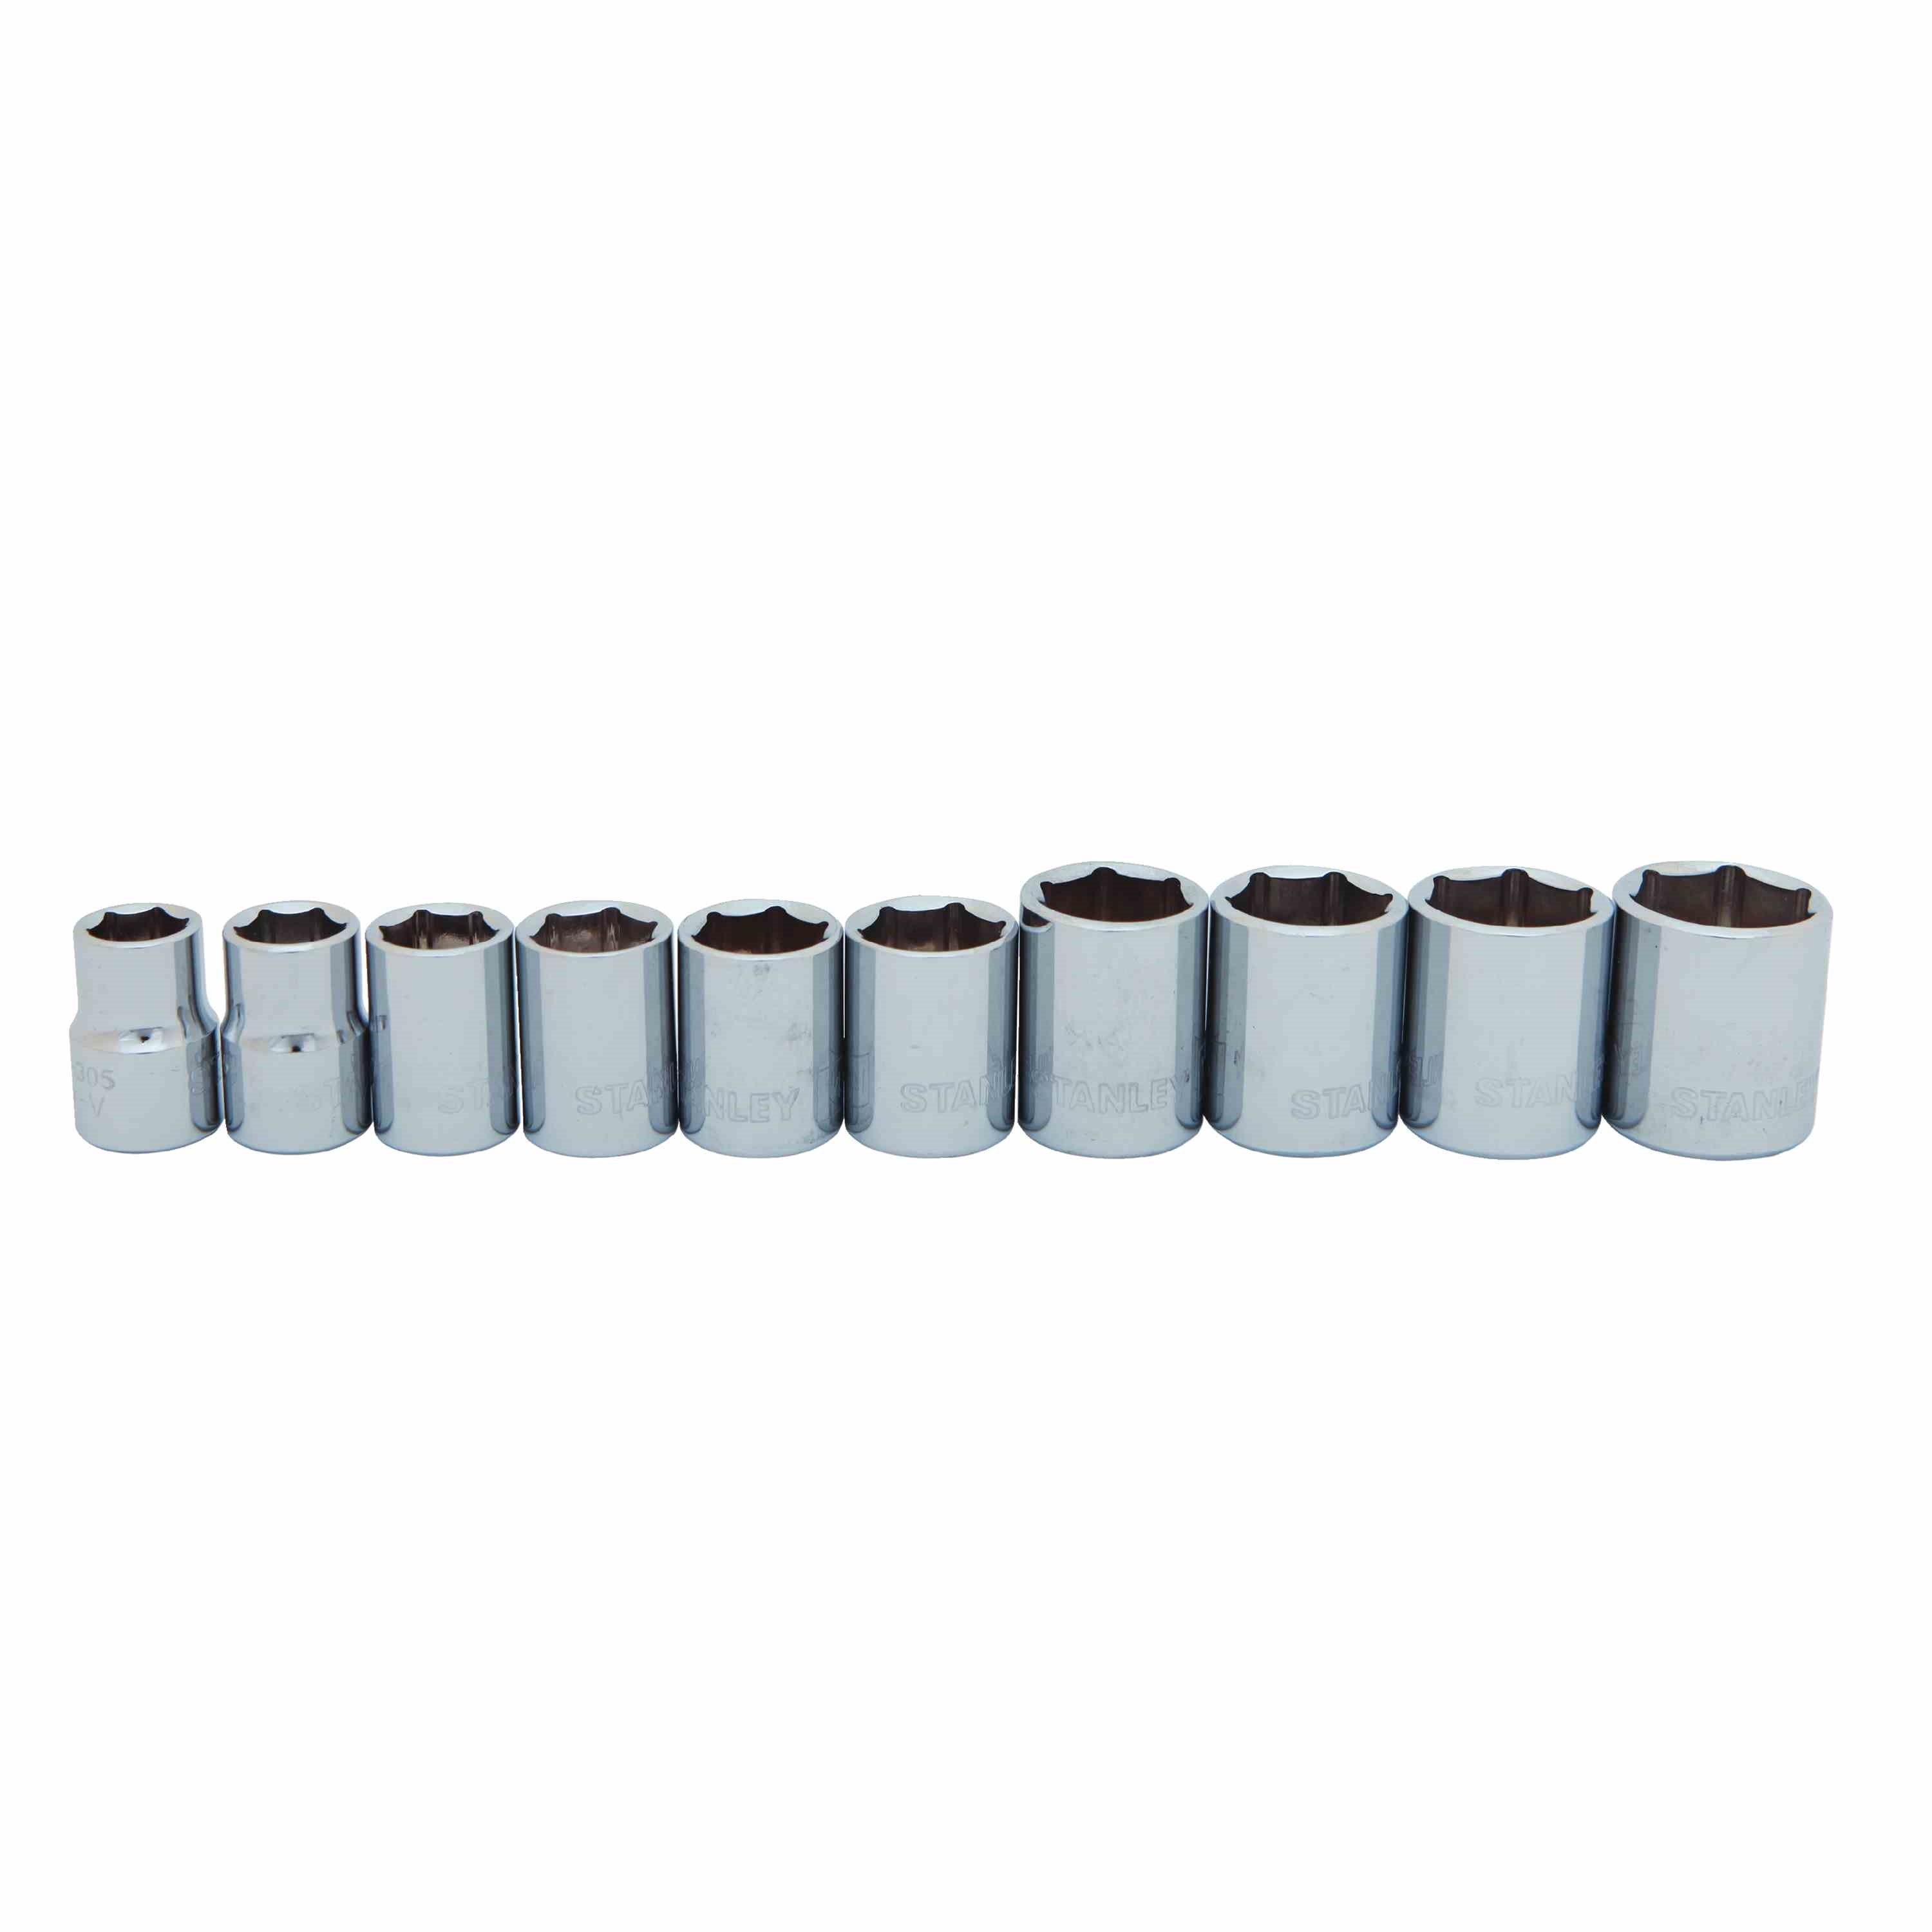 Stanley Tools - 10 pc 38 in Drive Standard Socket Set Metric - 95-442